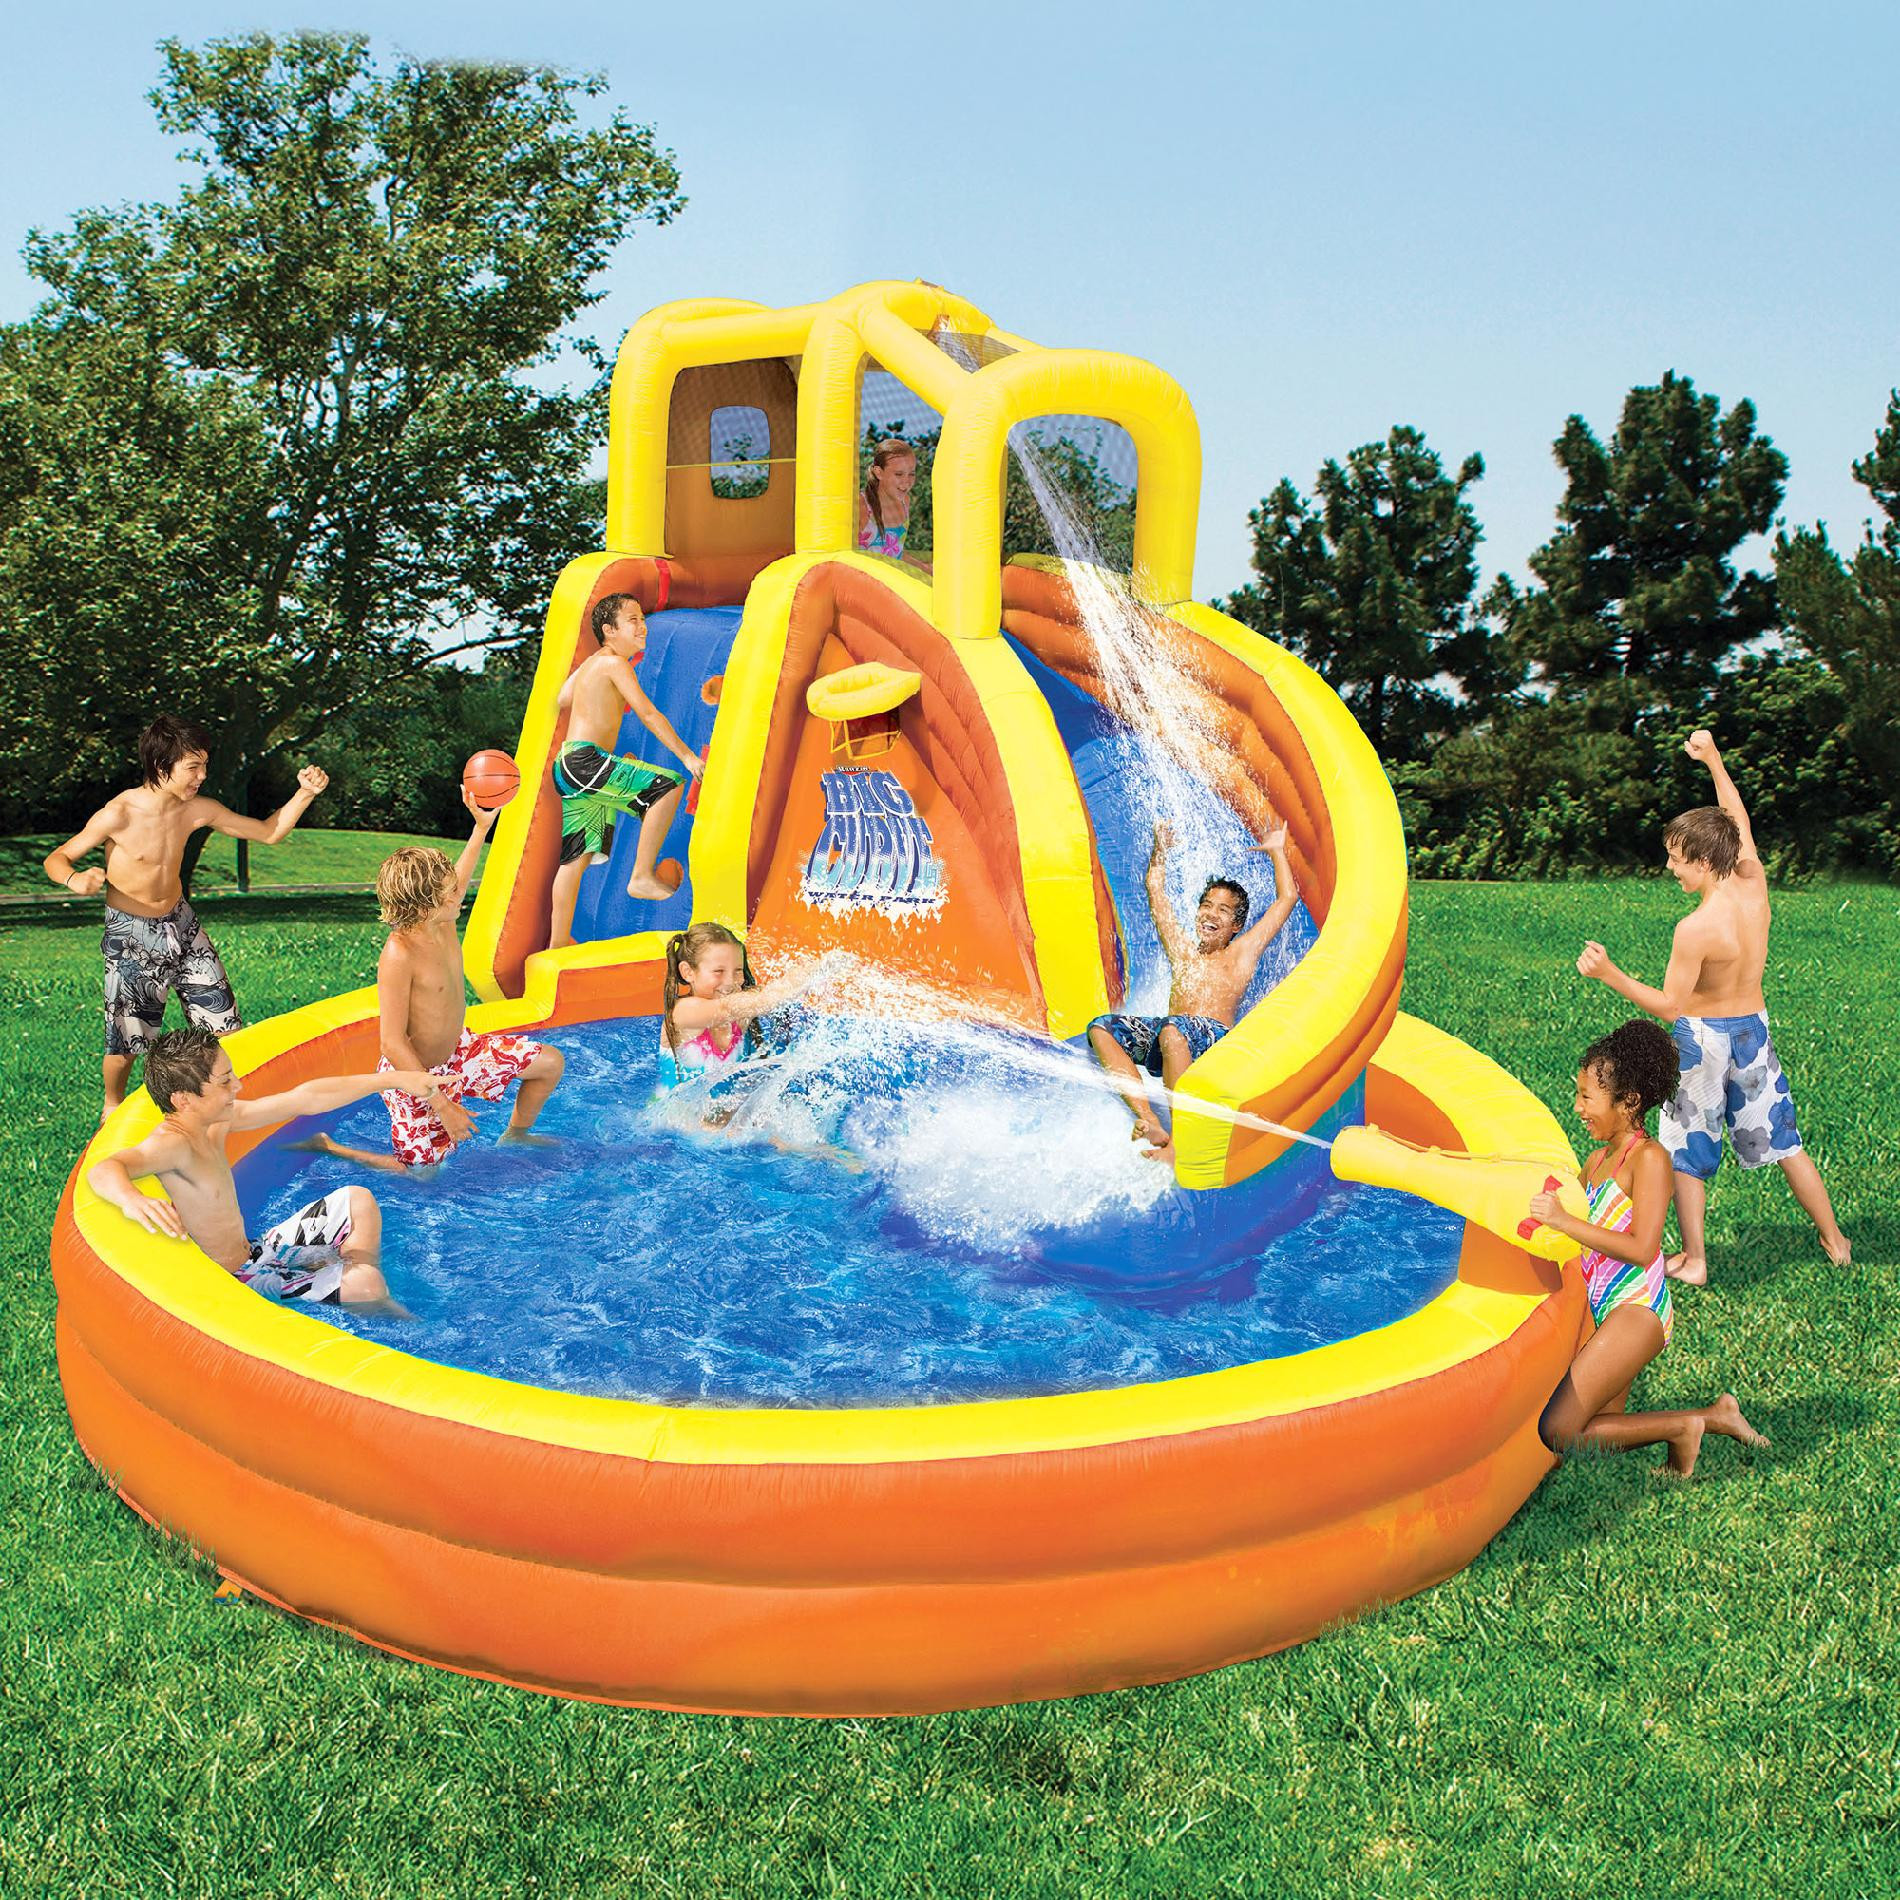 Best ideas about Backyard Water Toy . Save or Pin Banzai Typhoon Twist Water Slide Now.